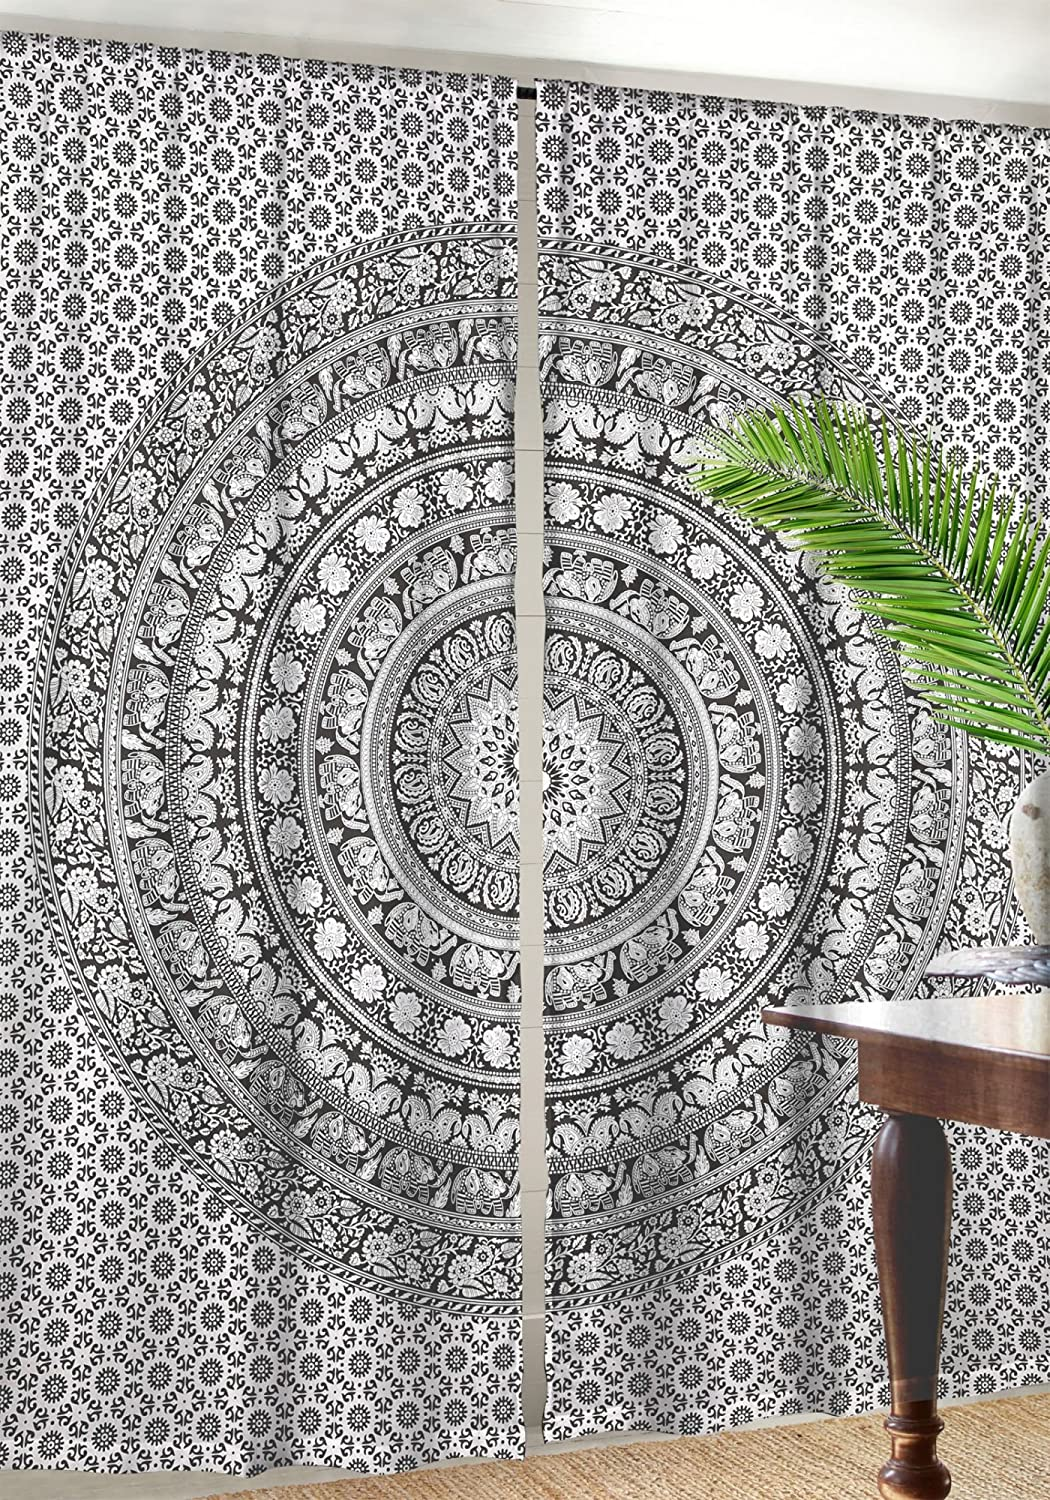 Indian Cotton Elephant Mandala Window Door Cover Curtain Hanging Drape Portiere